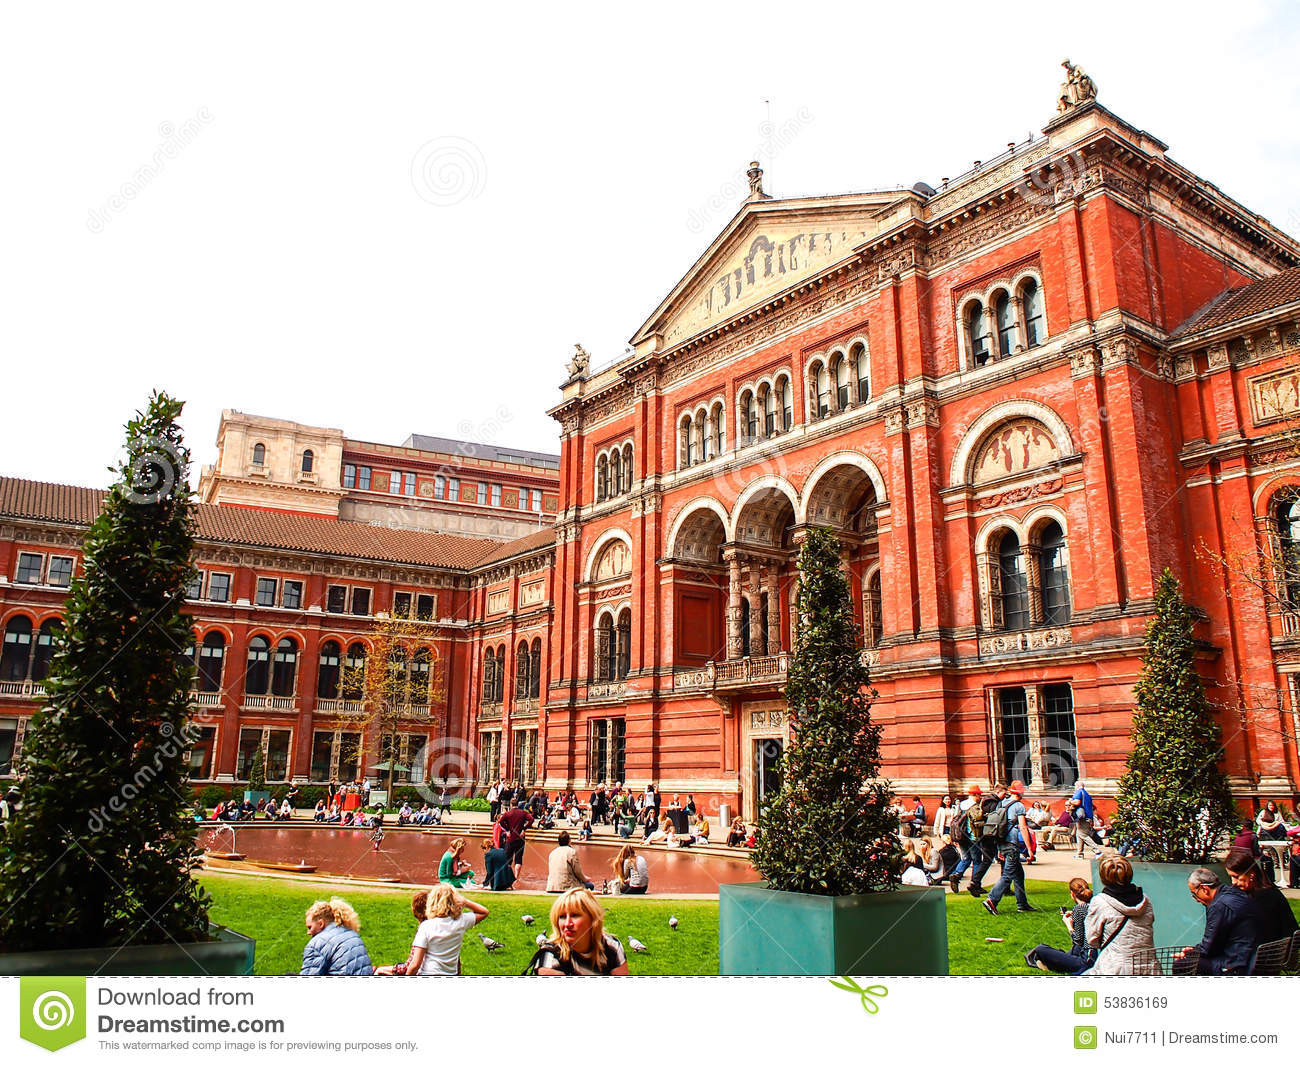 Victoria and Albert Museum, London, UK